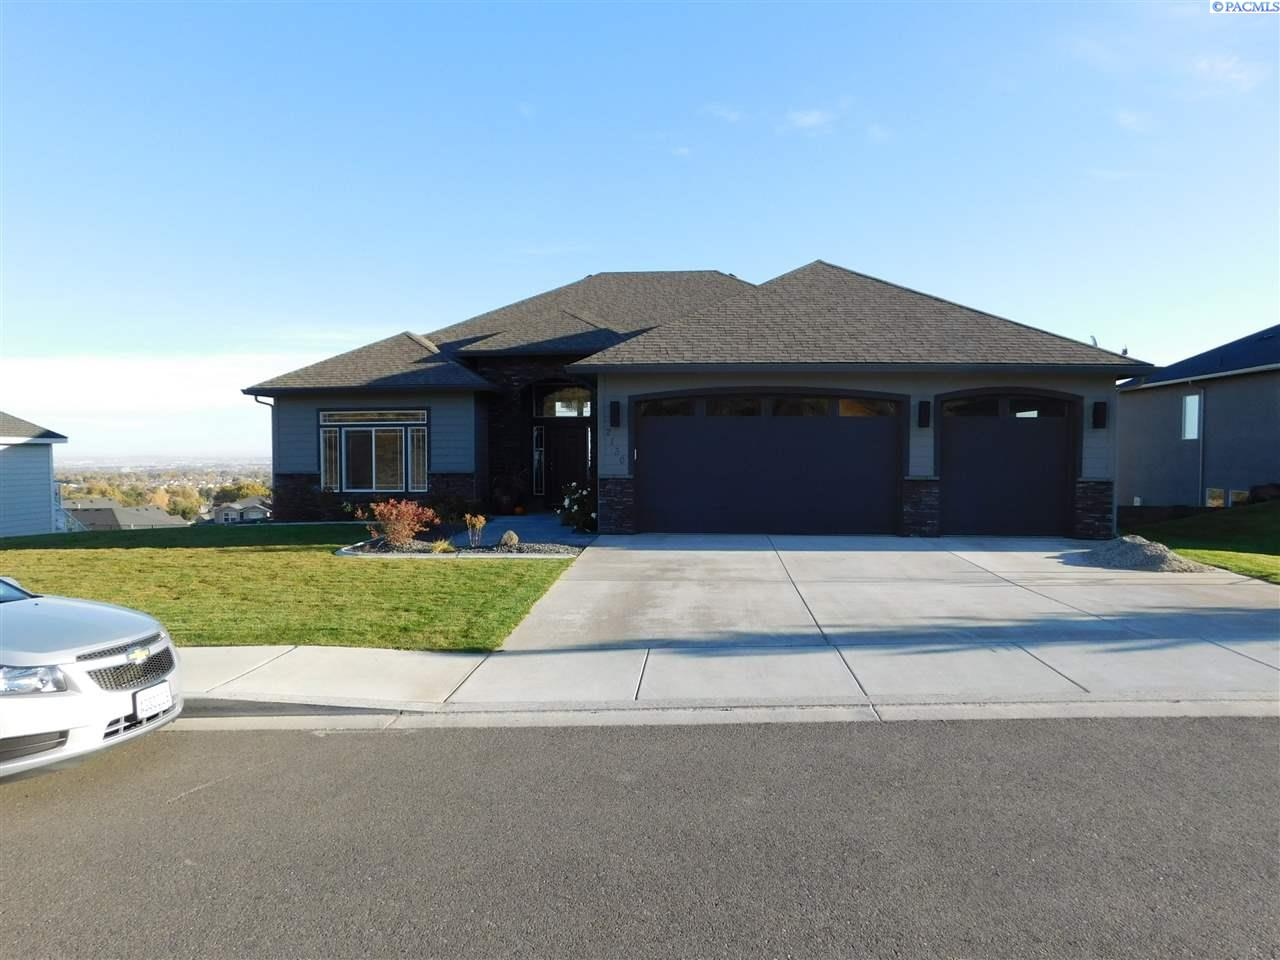 Single Family Home for Sale at 2130 W 51st Ave. 2130 W 51st Ave. Kennewick, Washington 99337 United States